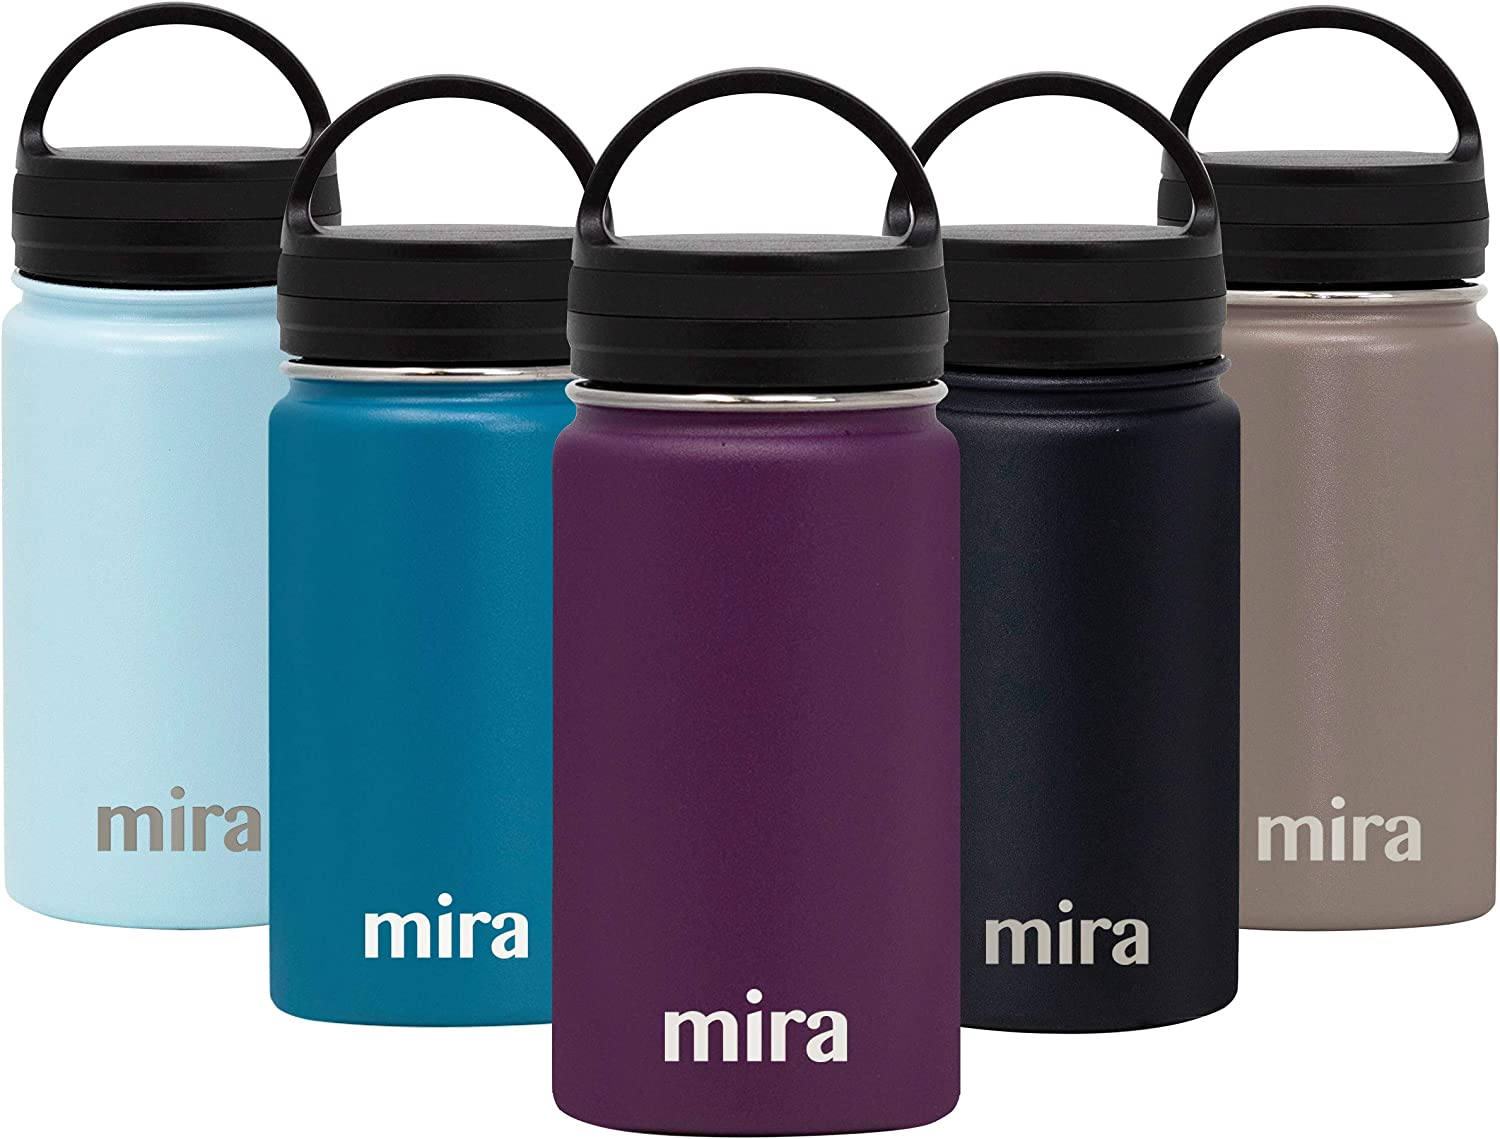 MIRA Insulated Stainless Steel Water Bottle - Hydro Vacuum Insulated Wide Mouth Thermos Flask - Keeps Water Stay Cold for 24 Hours, Hot for 12 Hours - Metal Bottle BPA-Free Cap - Iris - 12 oz